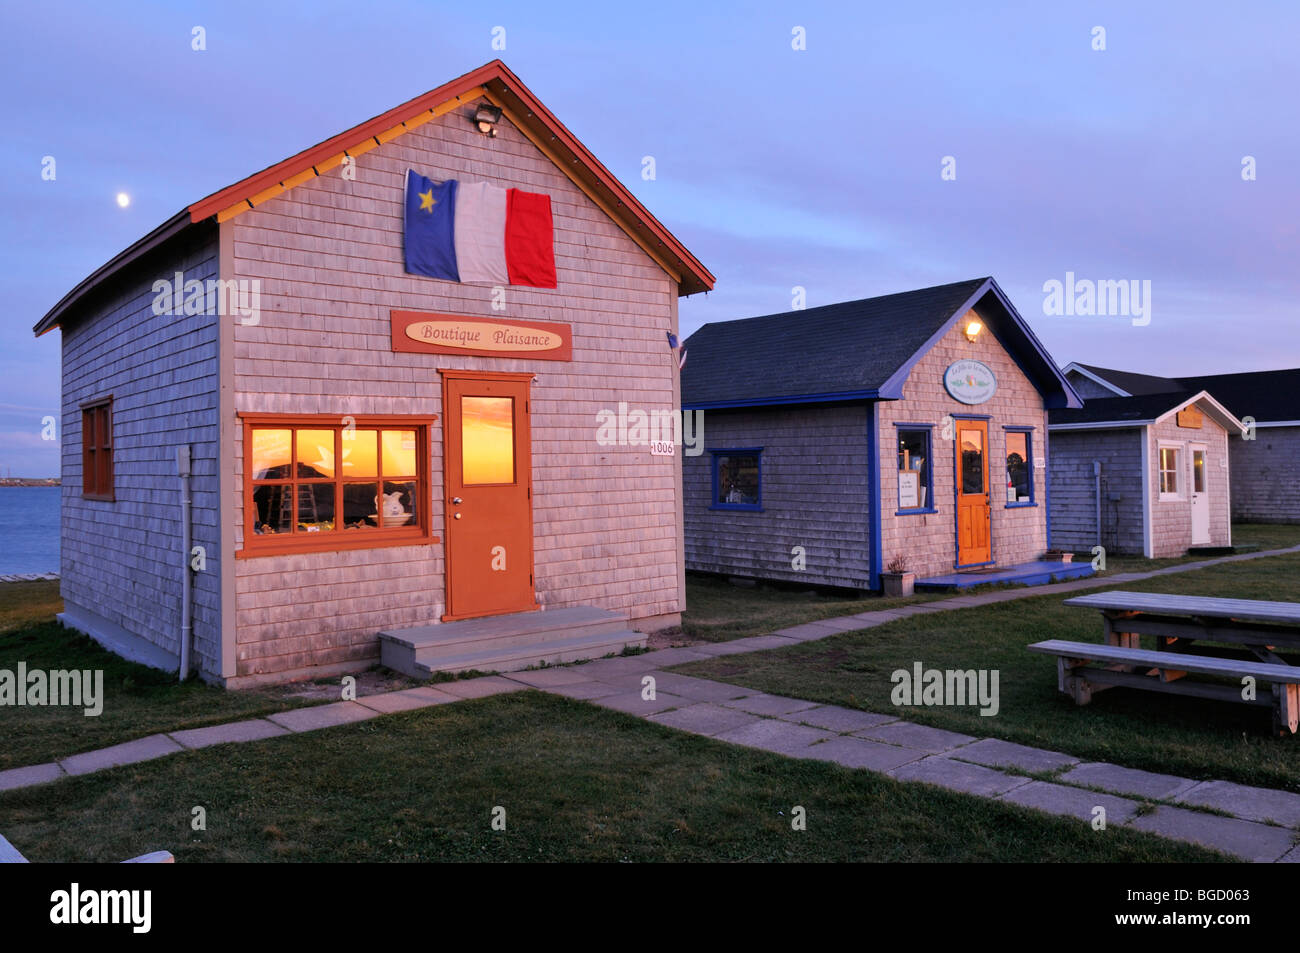 wooden houses in la grave ile du havre aubert iles de la madeleine stock photo royalty free. Black Bedroom Furniture Sets. Home Design Ideas